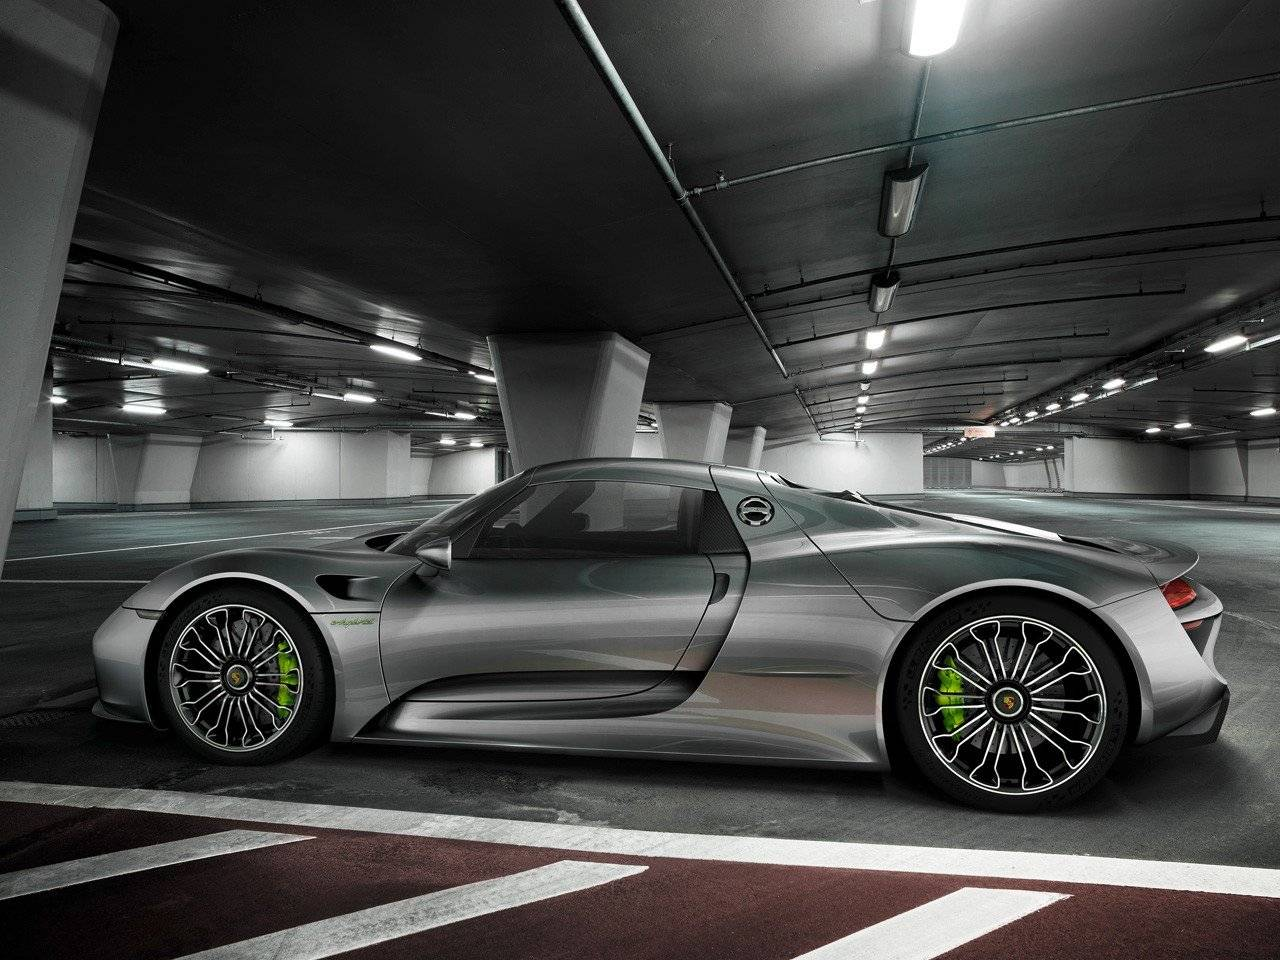 nu echt officieel de porsche 918 spyder autonieuws. Black Bedroom Furniture Sets. Home Design Ideas